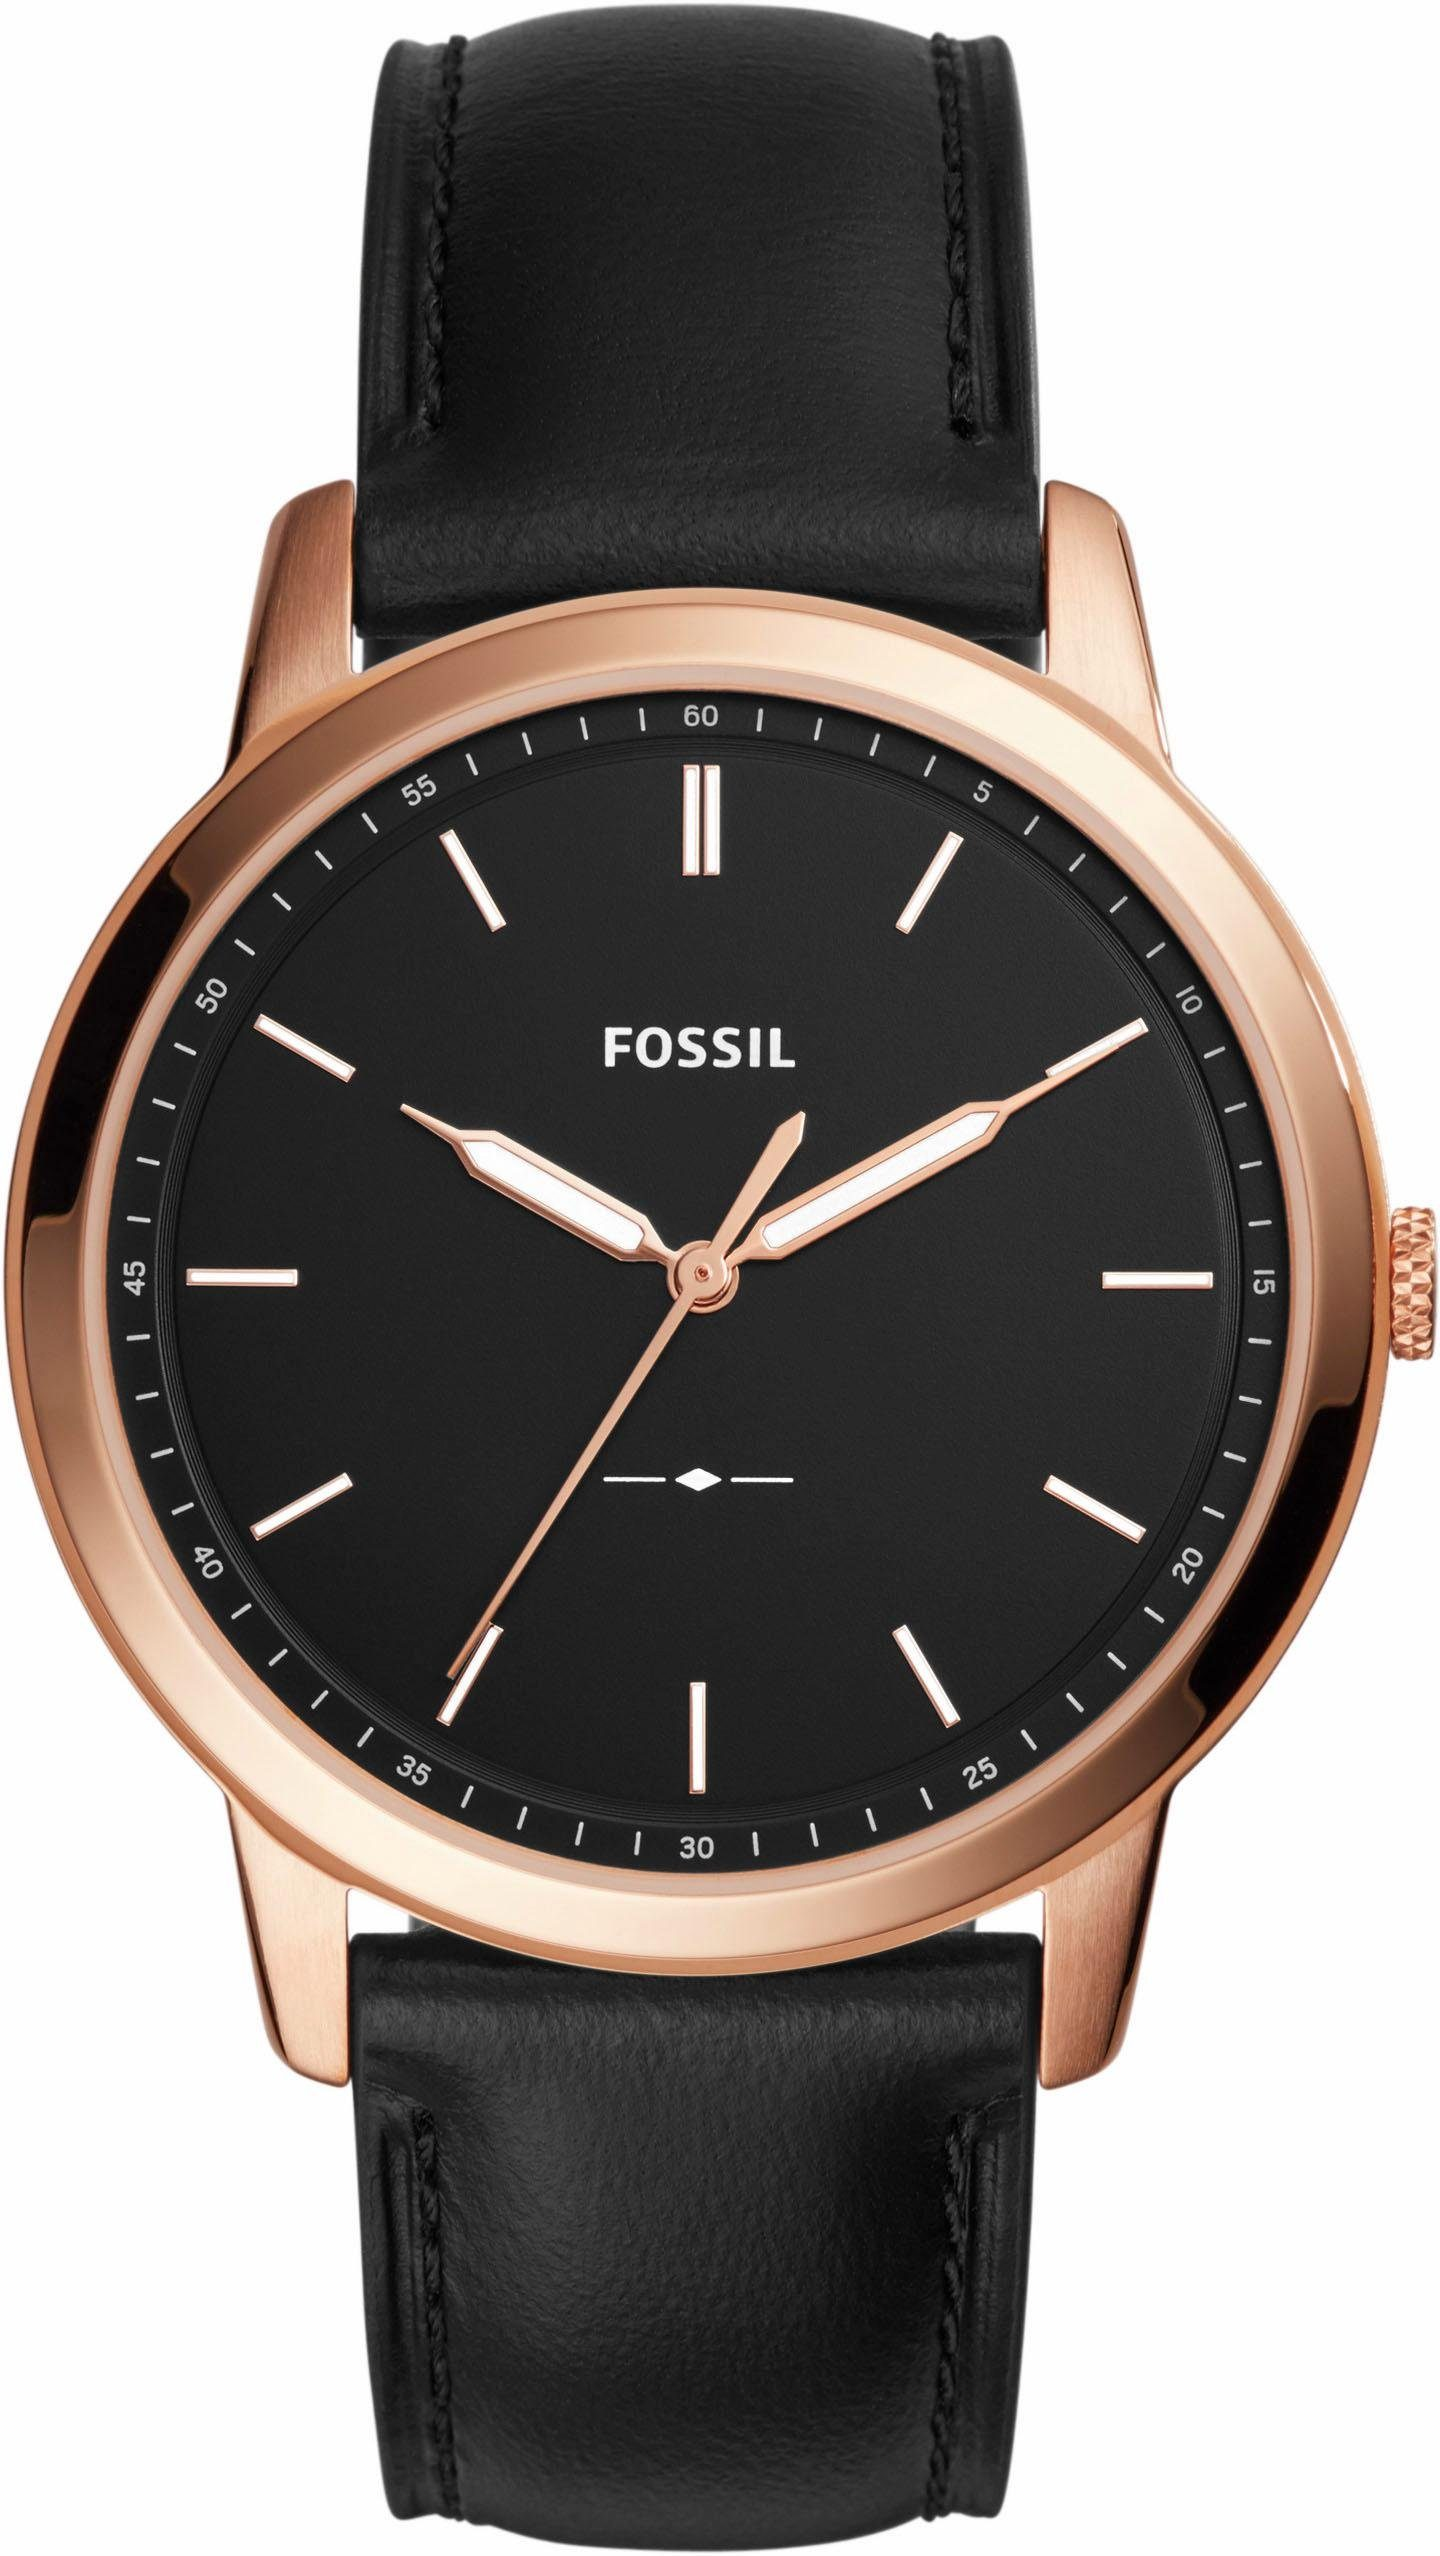 Fossil Quarzuhr »THE MINIMALIST, FS5376«